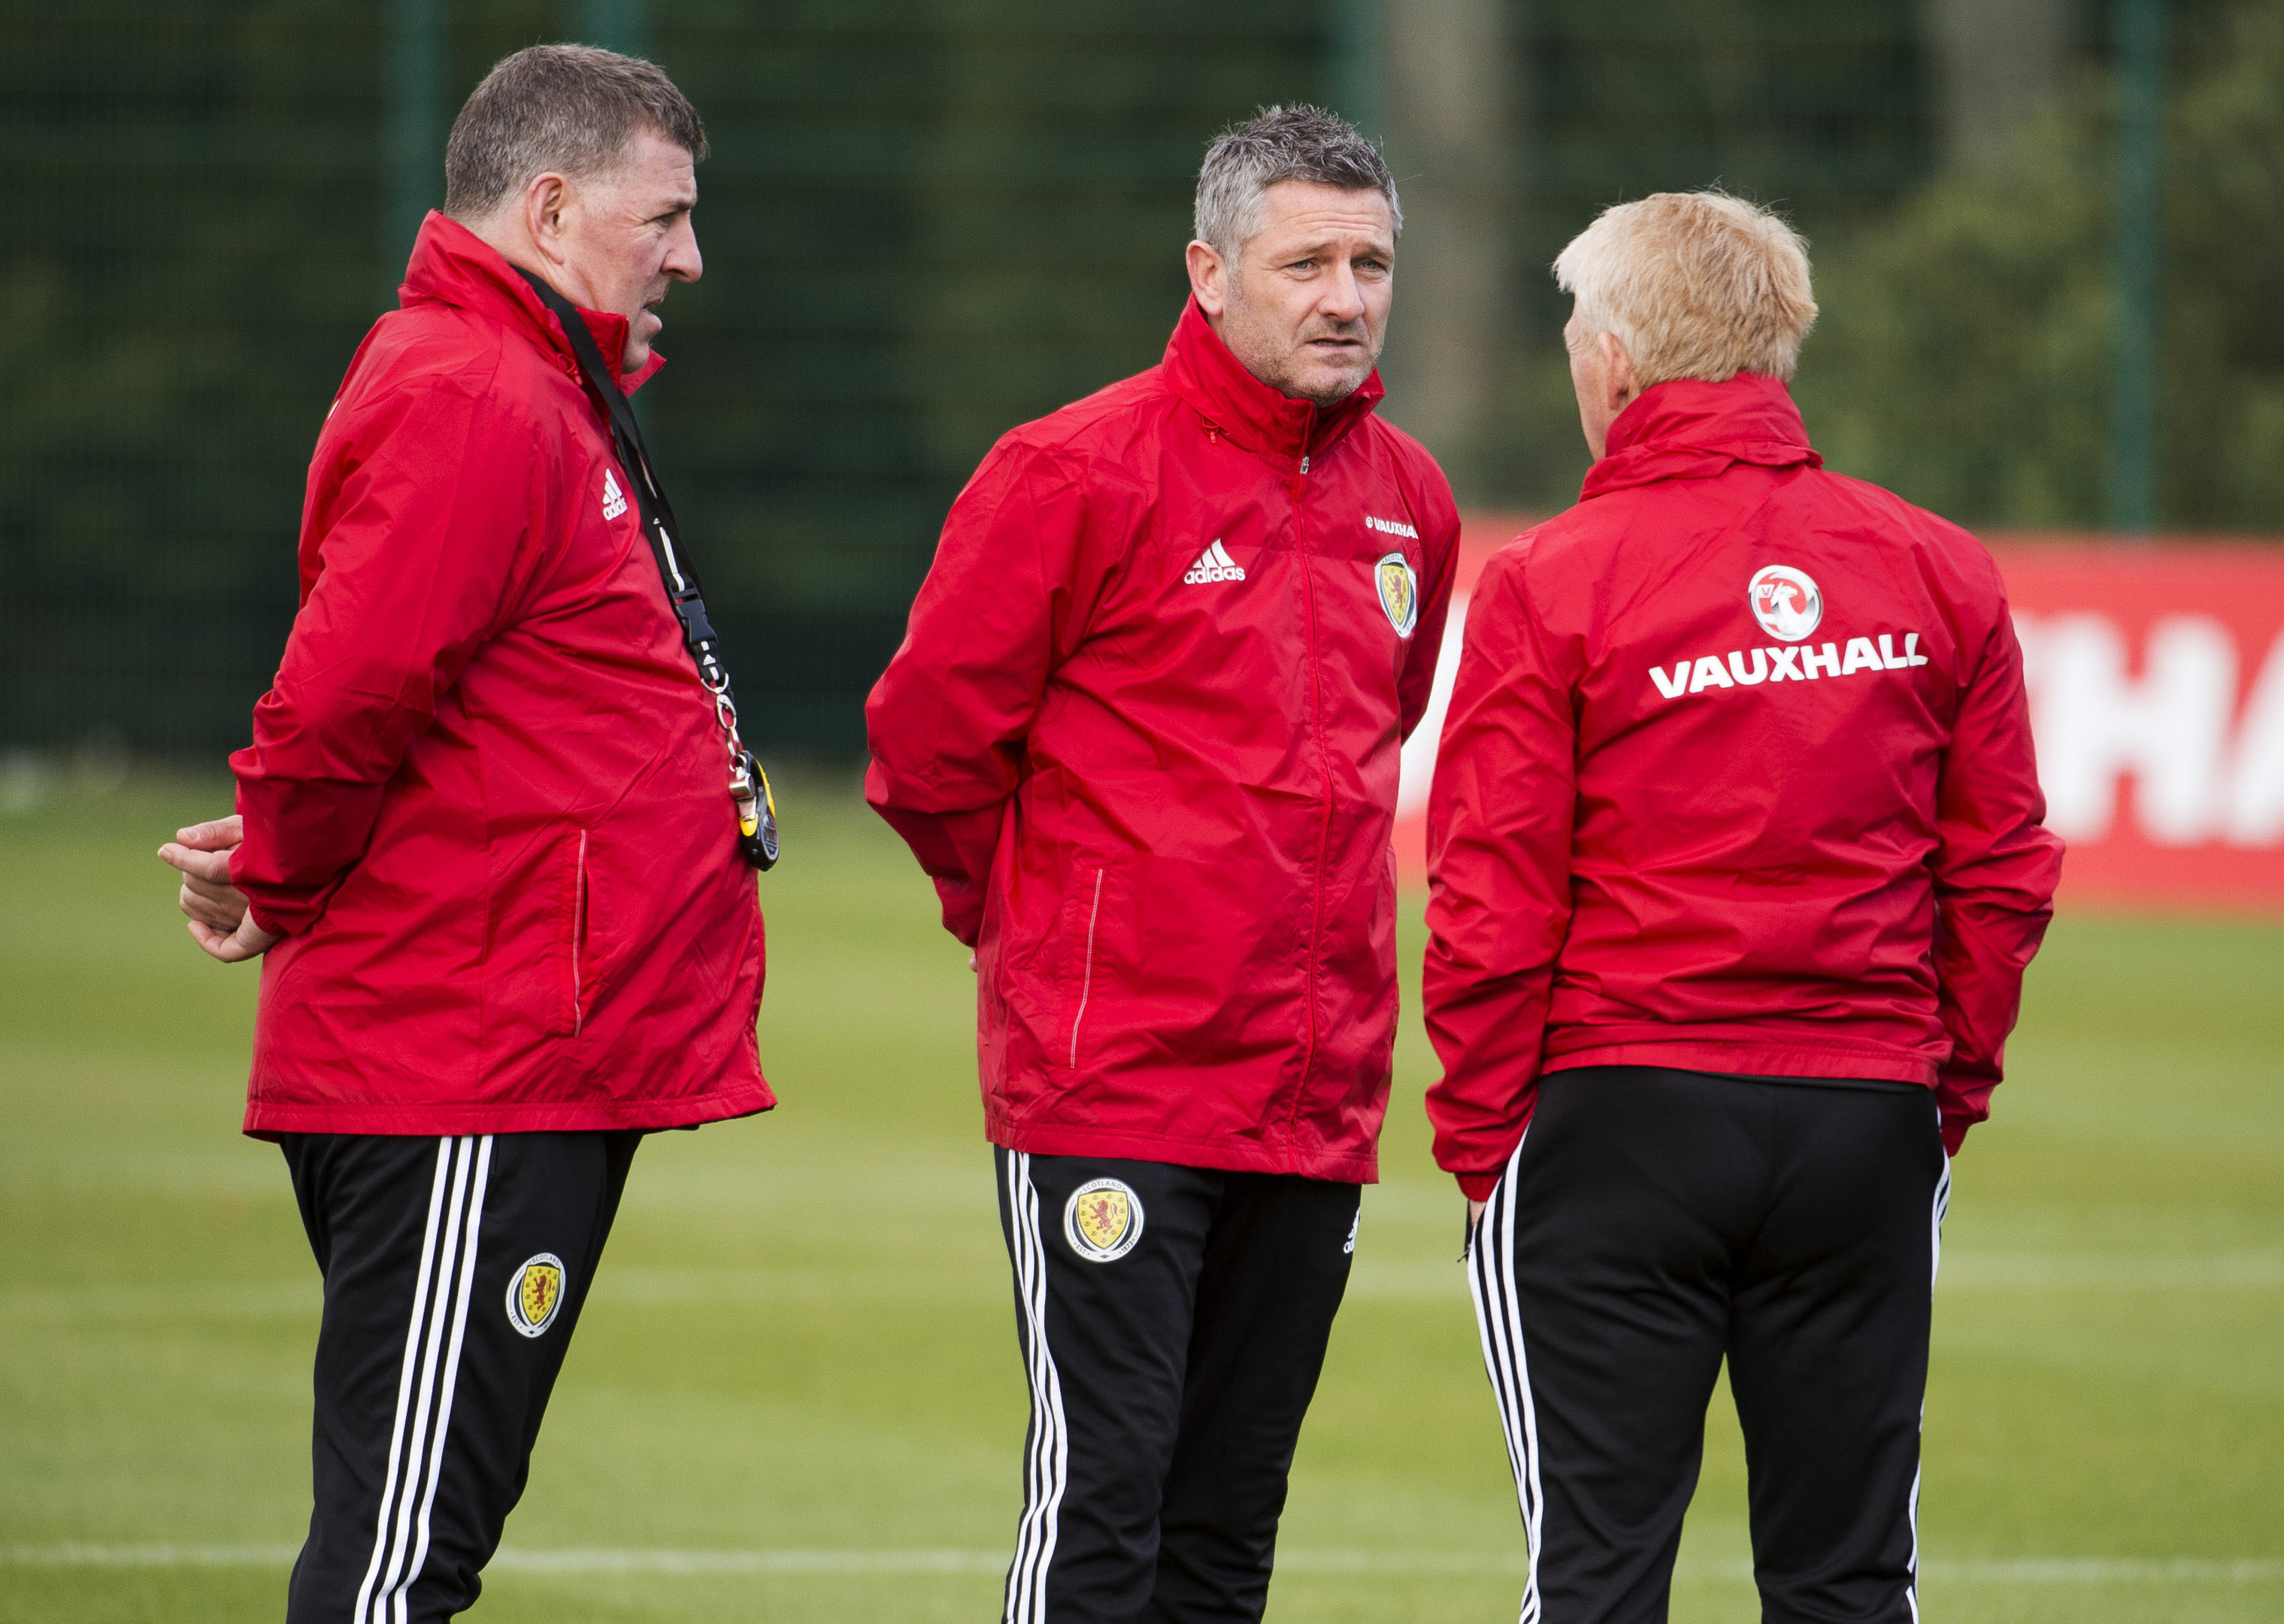 Tony Docherty, centre, with Scotland boss Gordon Strachan.